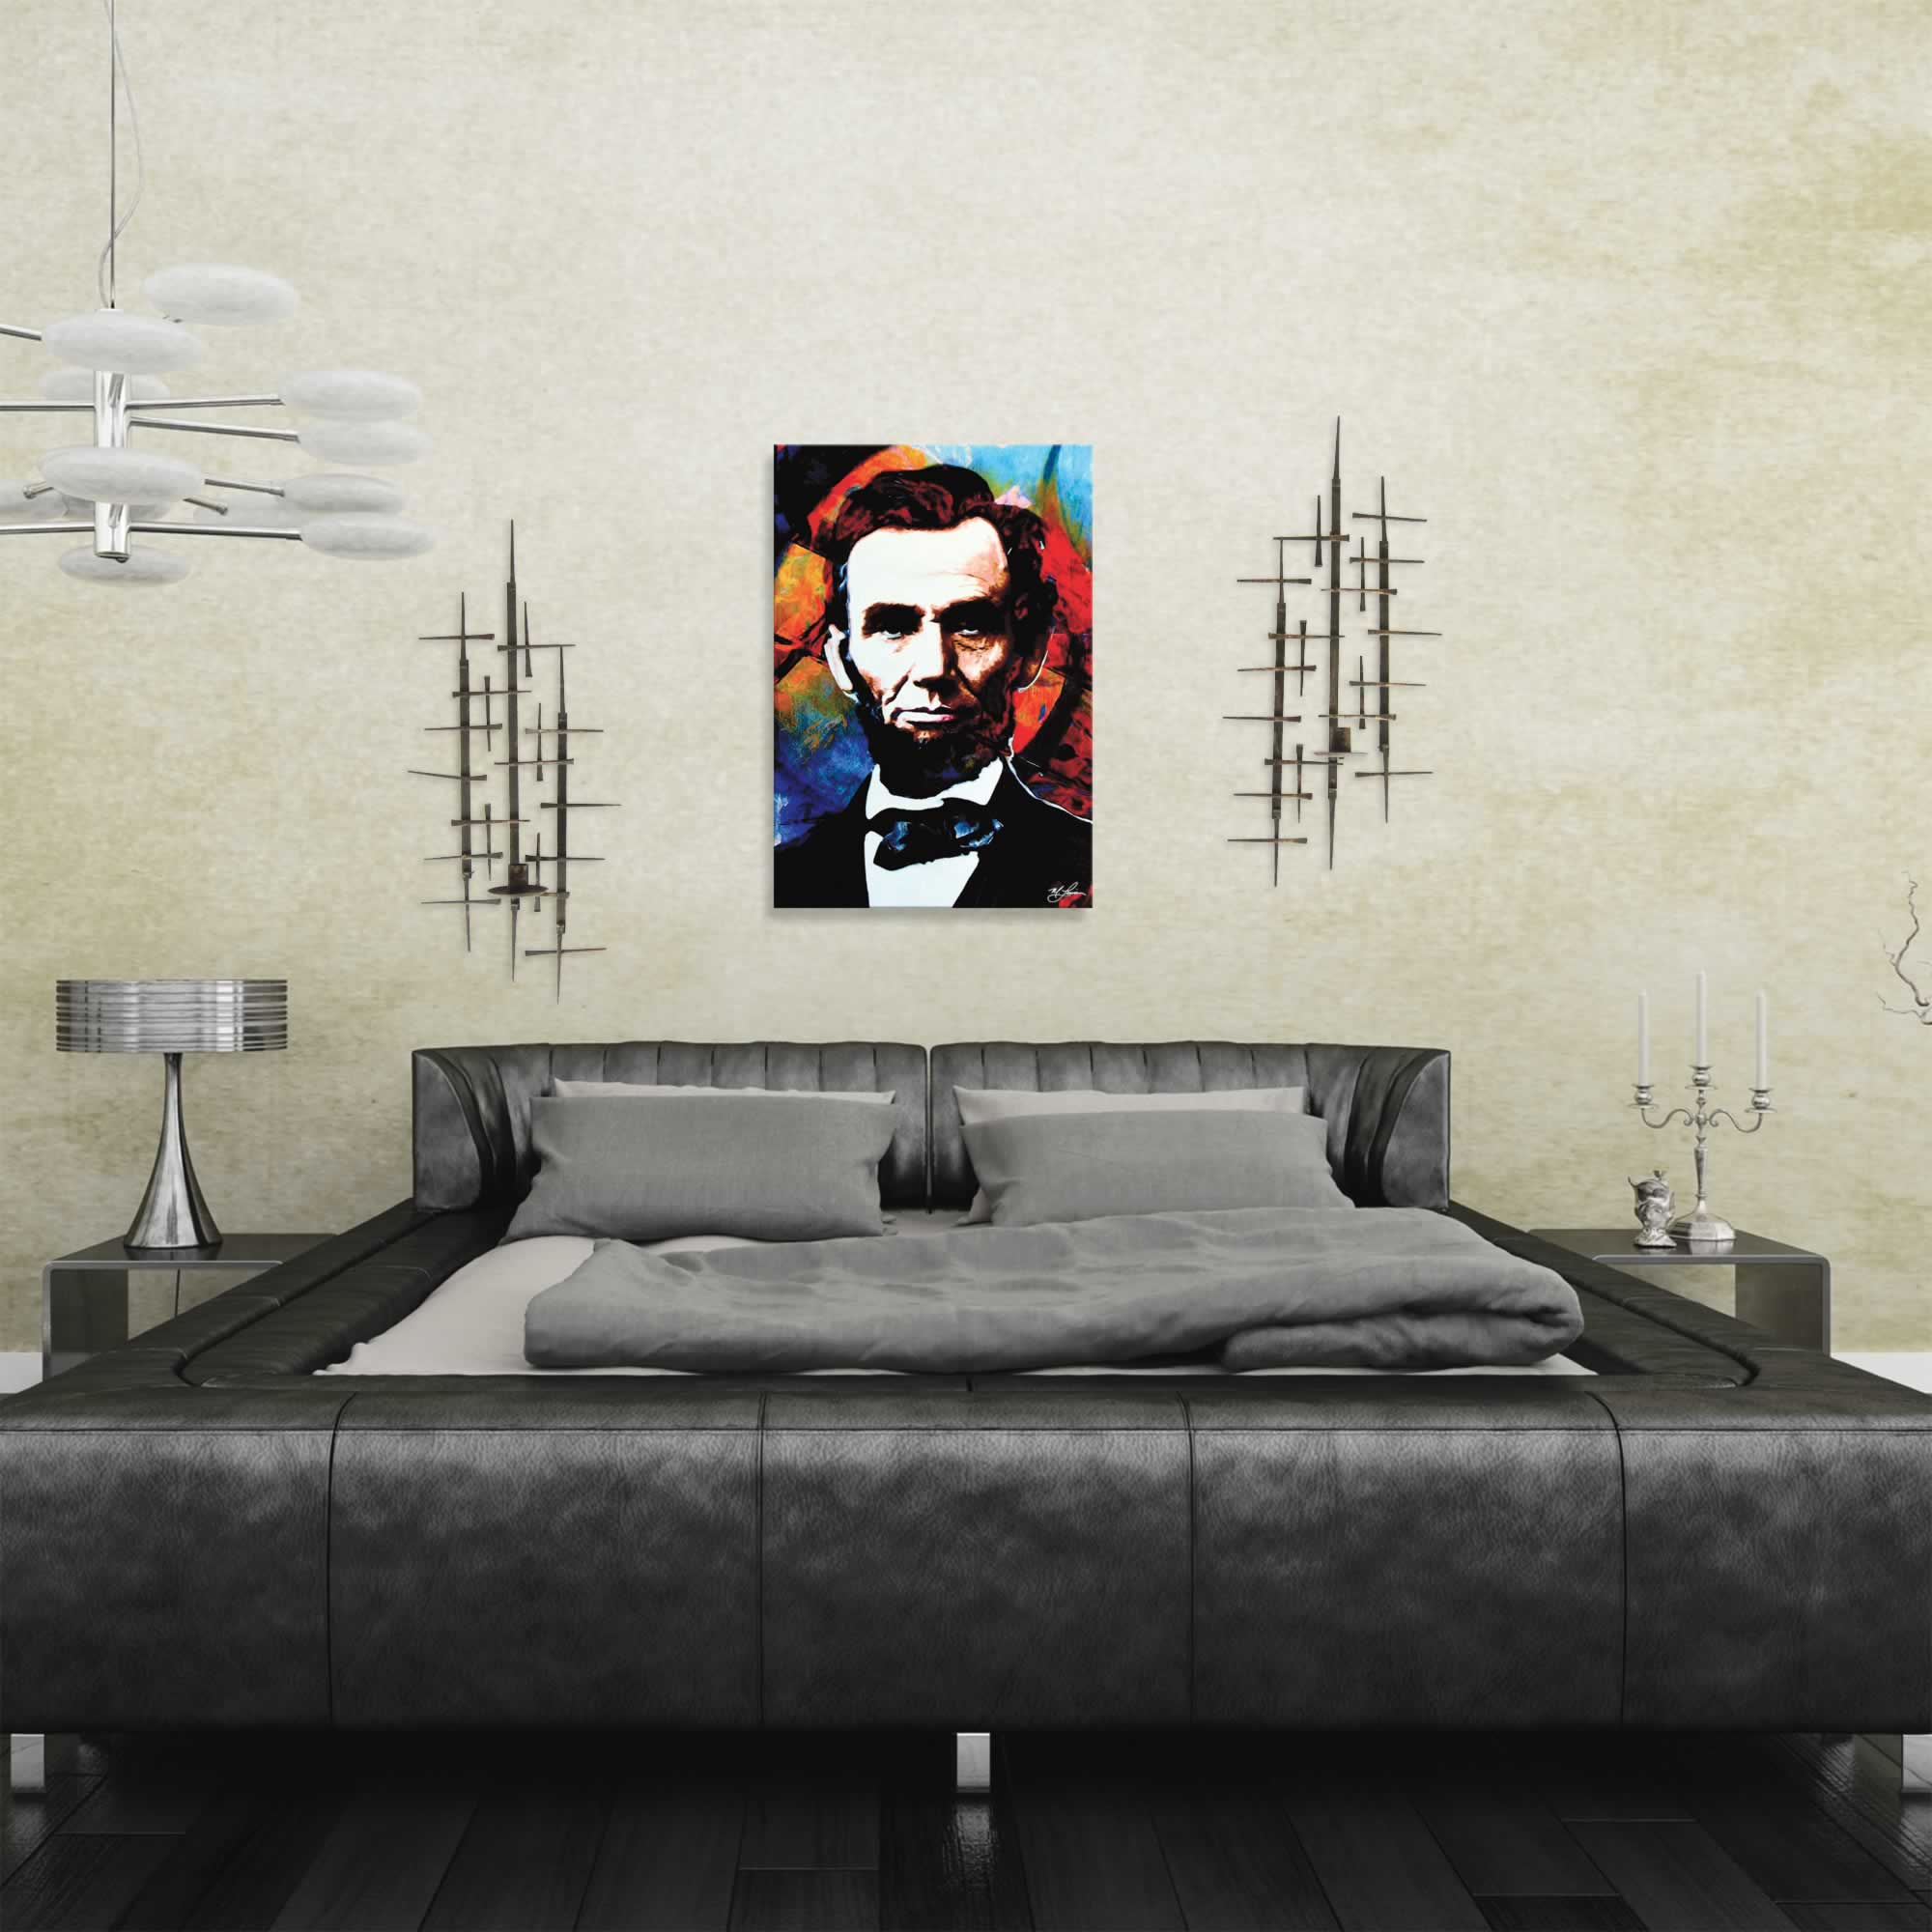 Abraham Lincoln Knowing Lincoln | Pop Art Painting by Mark Lewis, Signed & Numbered Limited Edition - ML0005